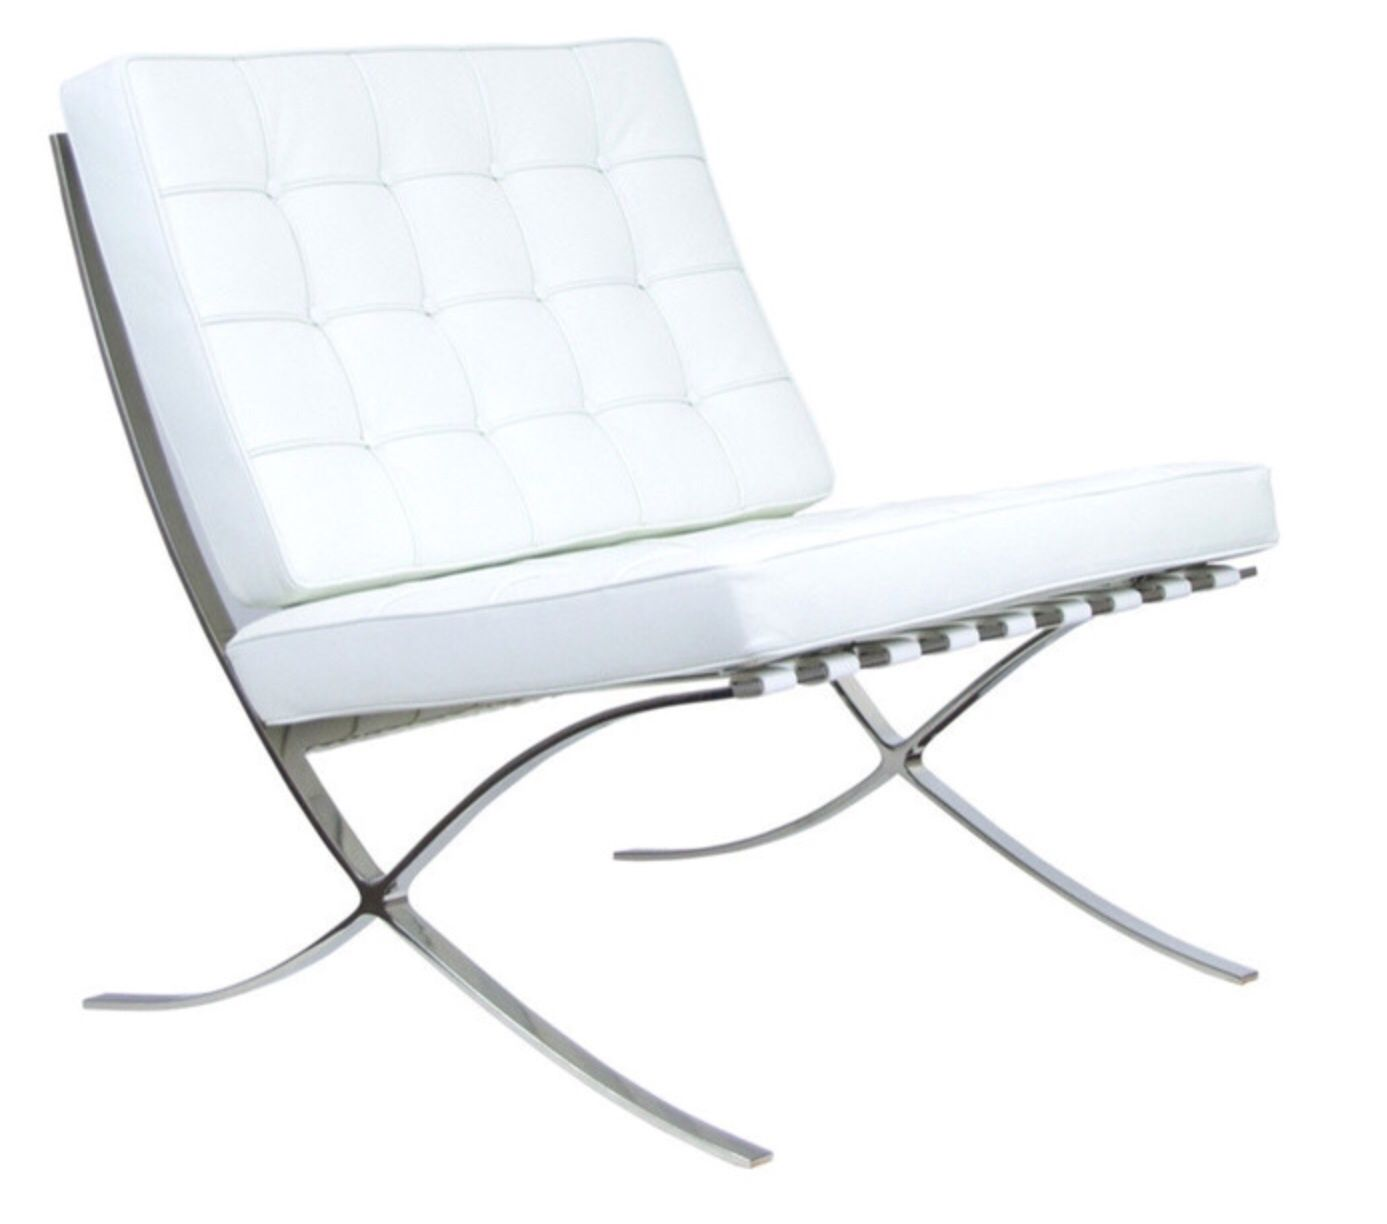 Barcelona chair reproduction aniline leather white sold